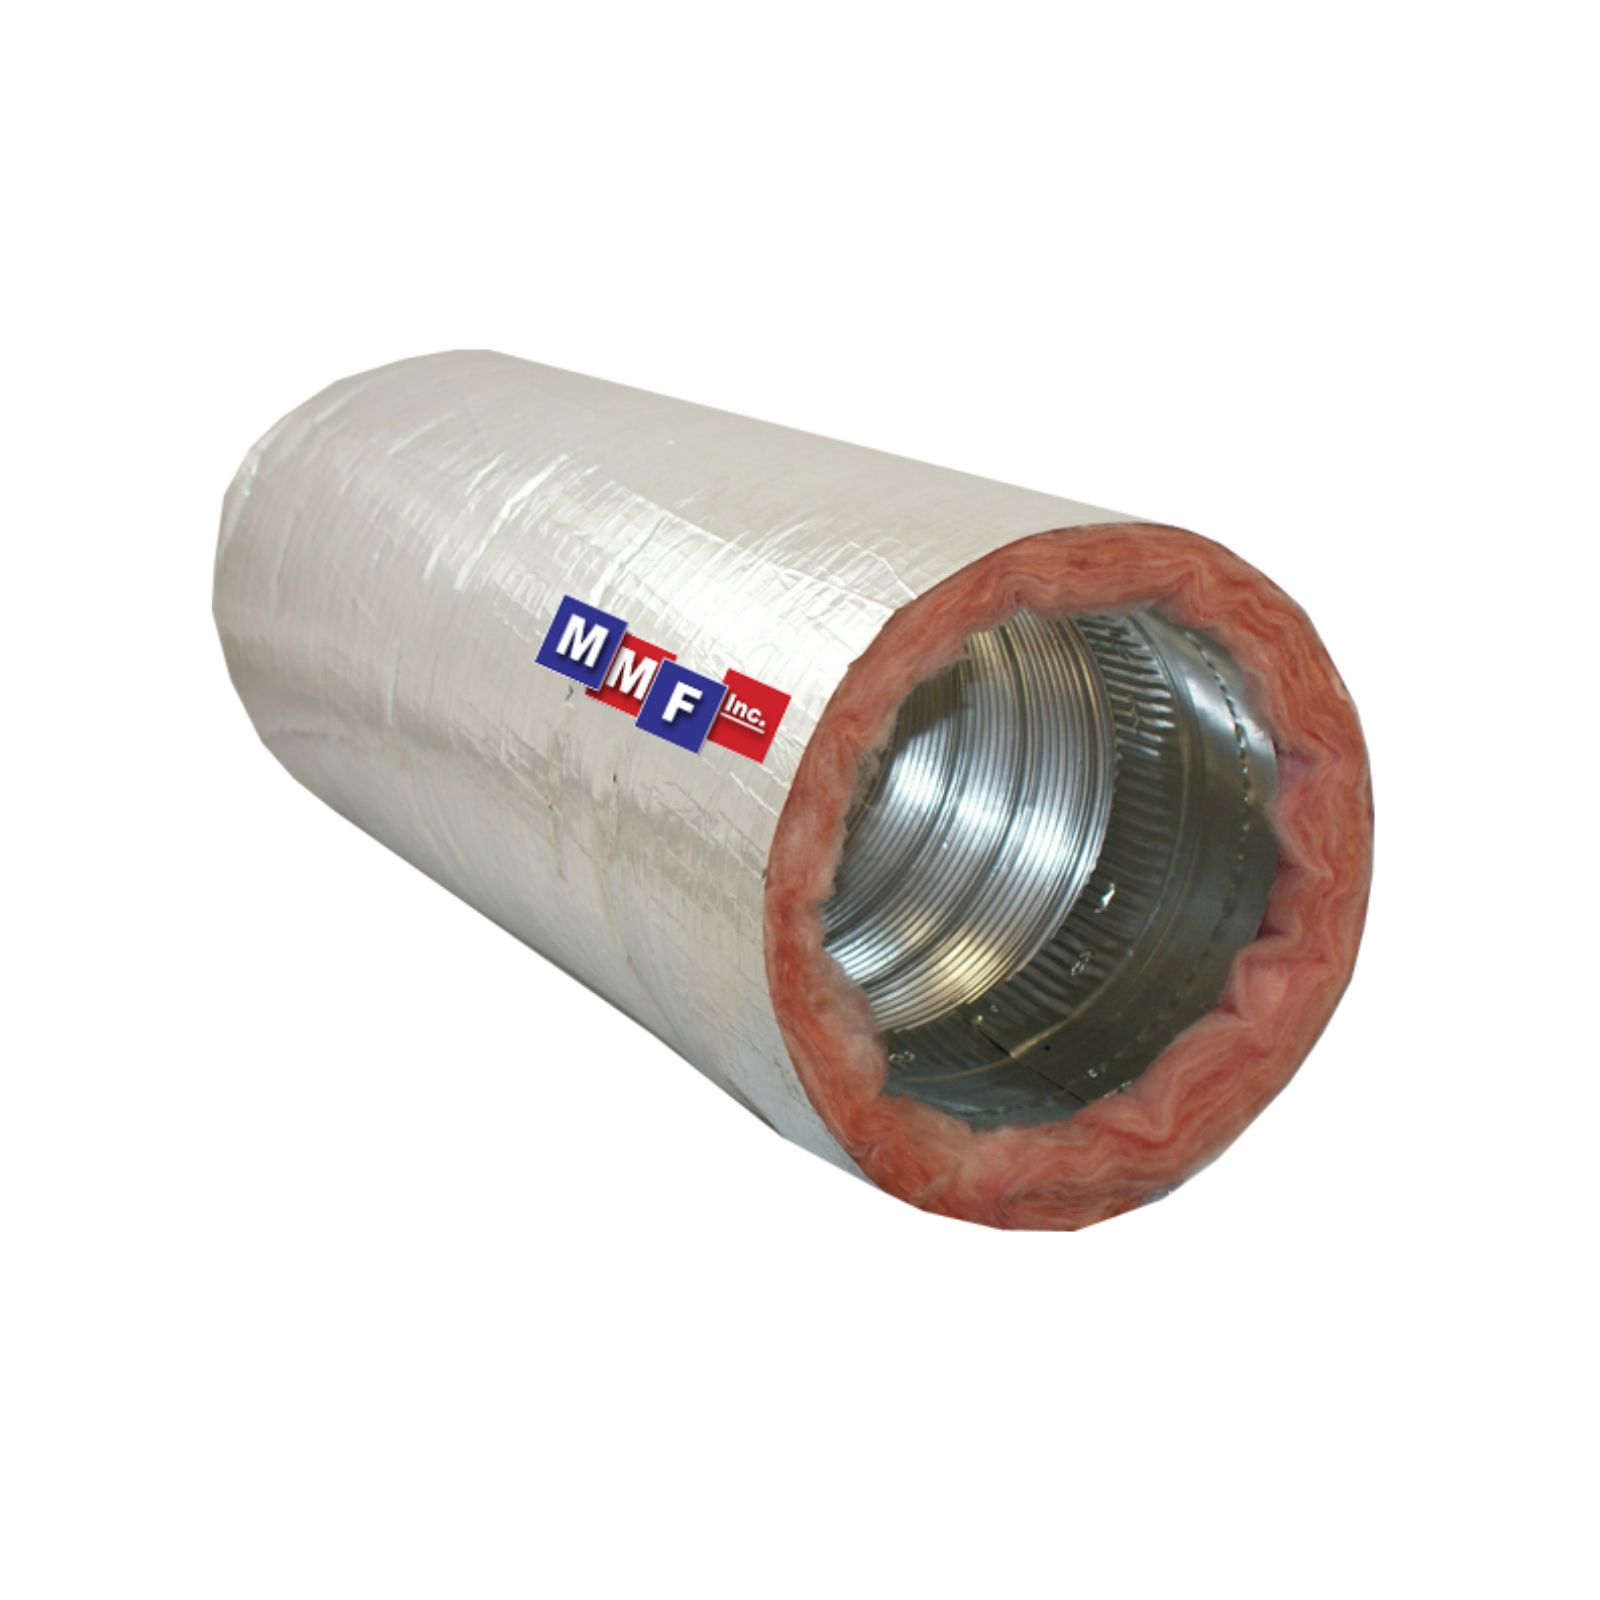 #AE1D23 Item#: Brand New 5931 Prefabricated Ductwork images with 1600x1600 px on helpvideos.info - Air Conditioners, Air Coolers and more